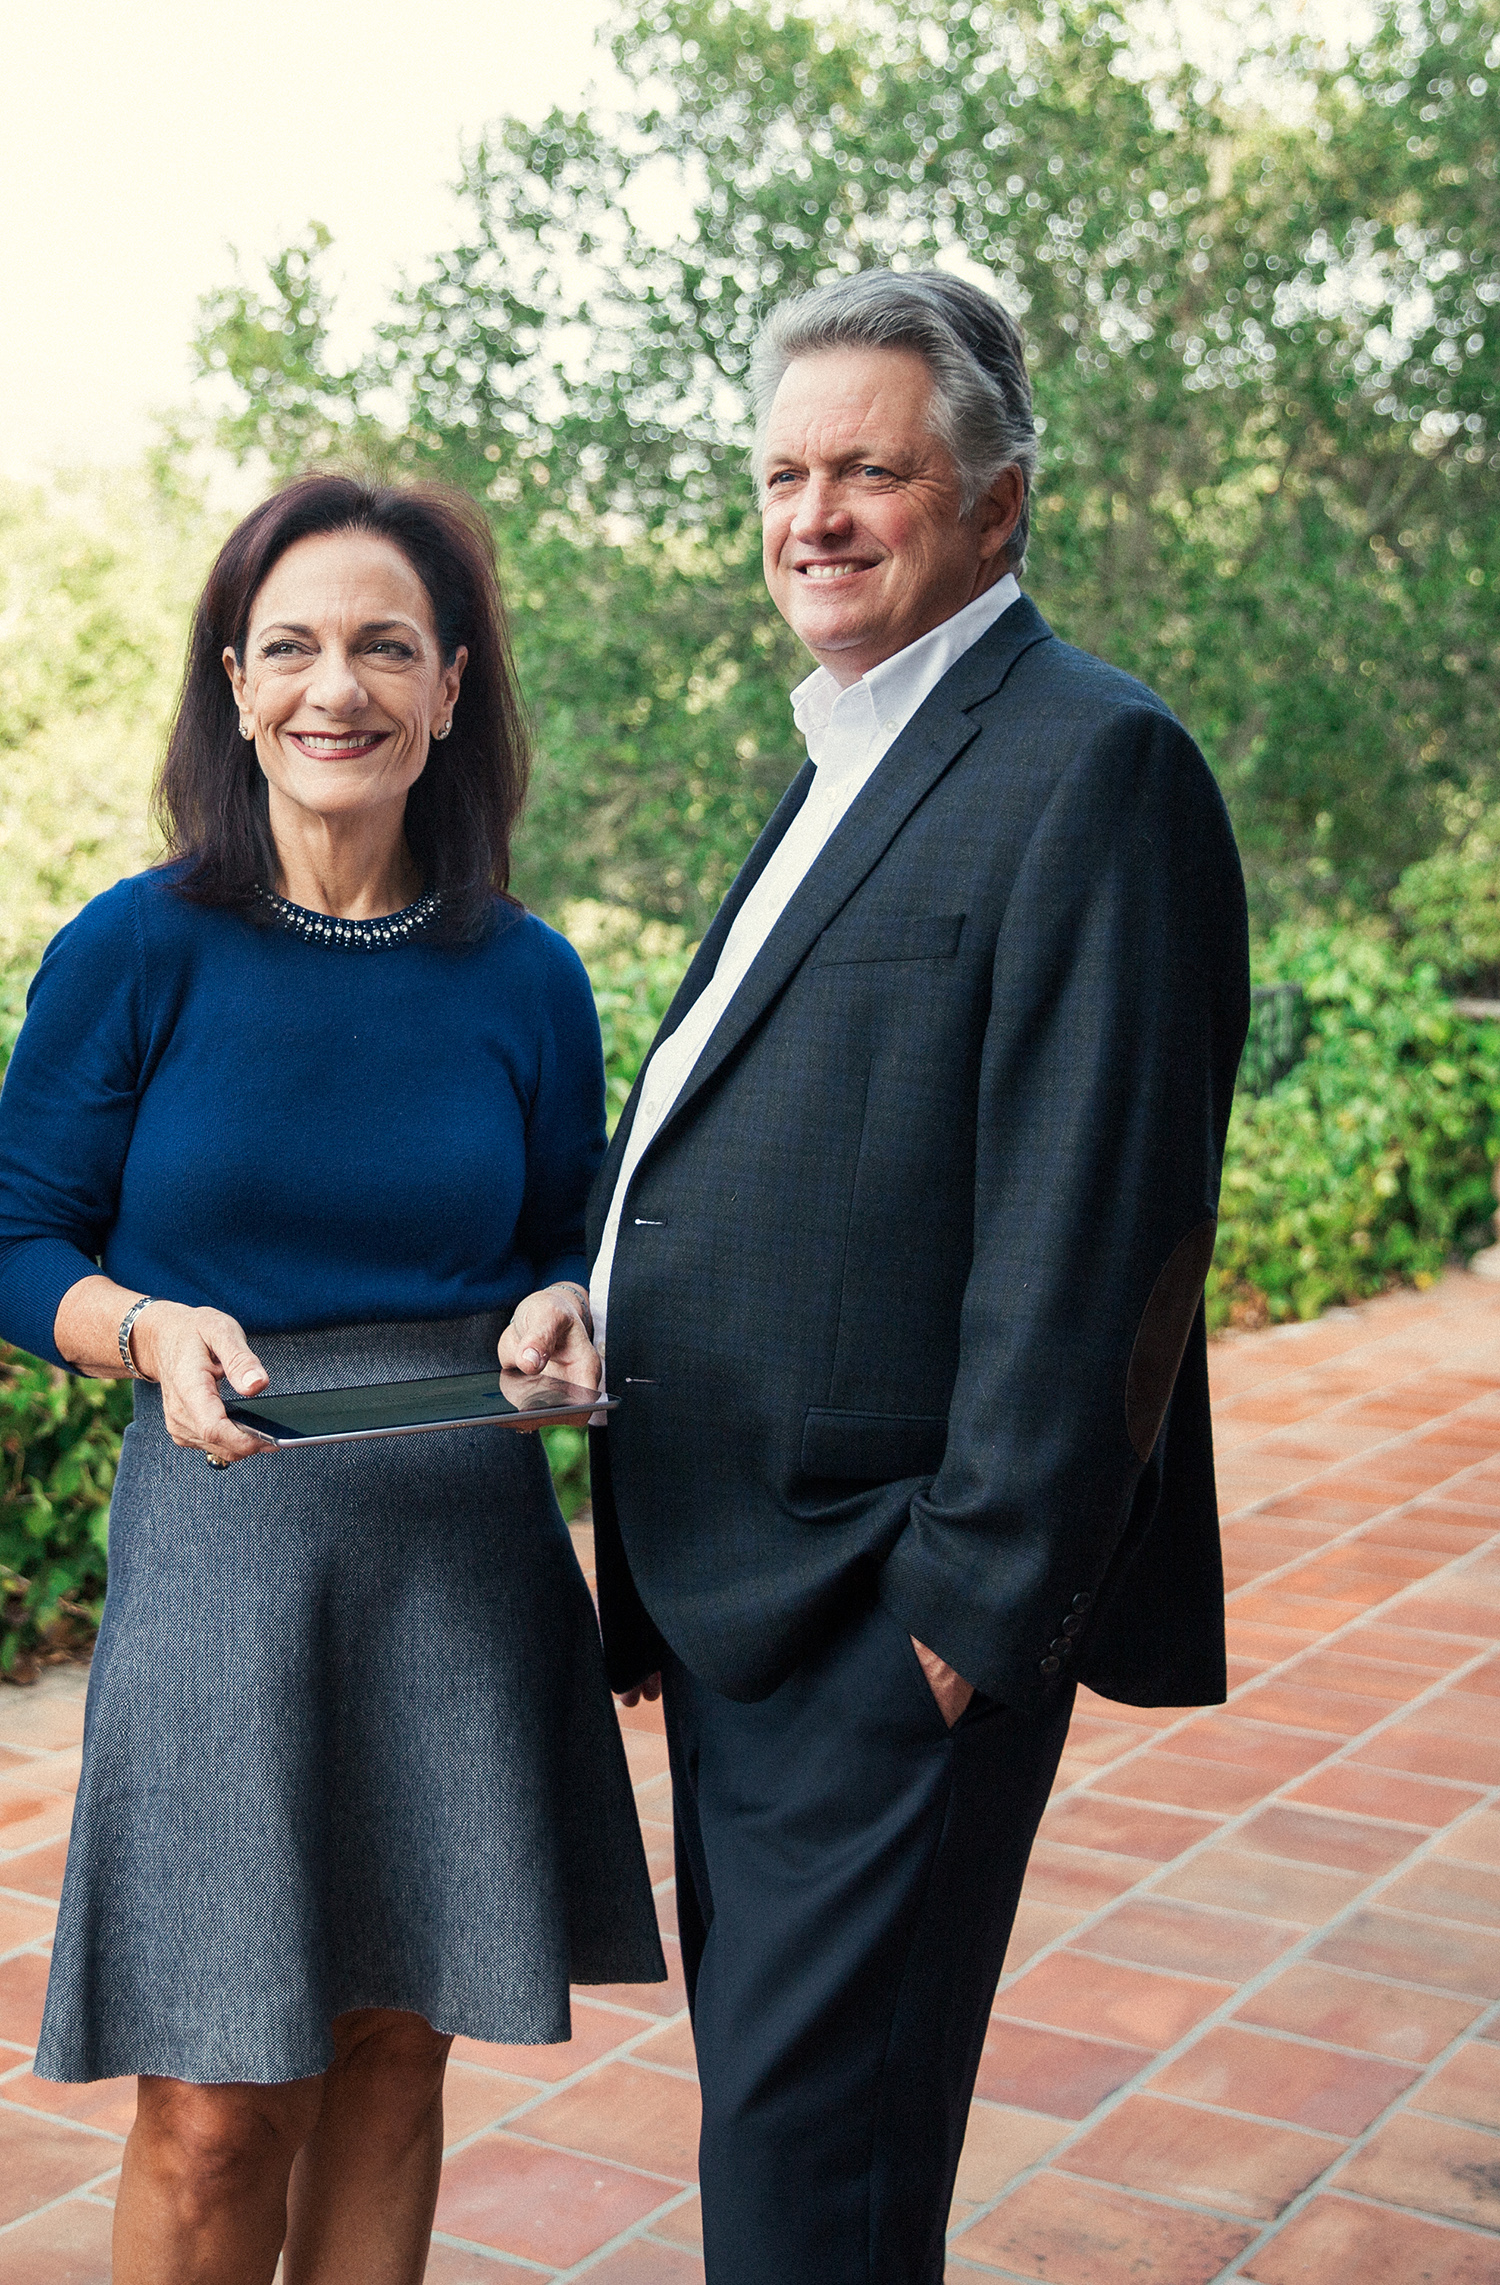 Meet the Team - Langhorne Group brings together two full-time Santa Barbara Realtors in a unique blend of talent that operates under the singular belief that a team always outperforms an individual effort. Sharing common ethical standards, operating with honest communication, and employing a collaborative approach, each member brings their individual expertise to the table to create better solutions as a team.